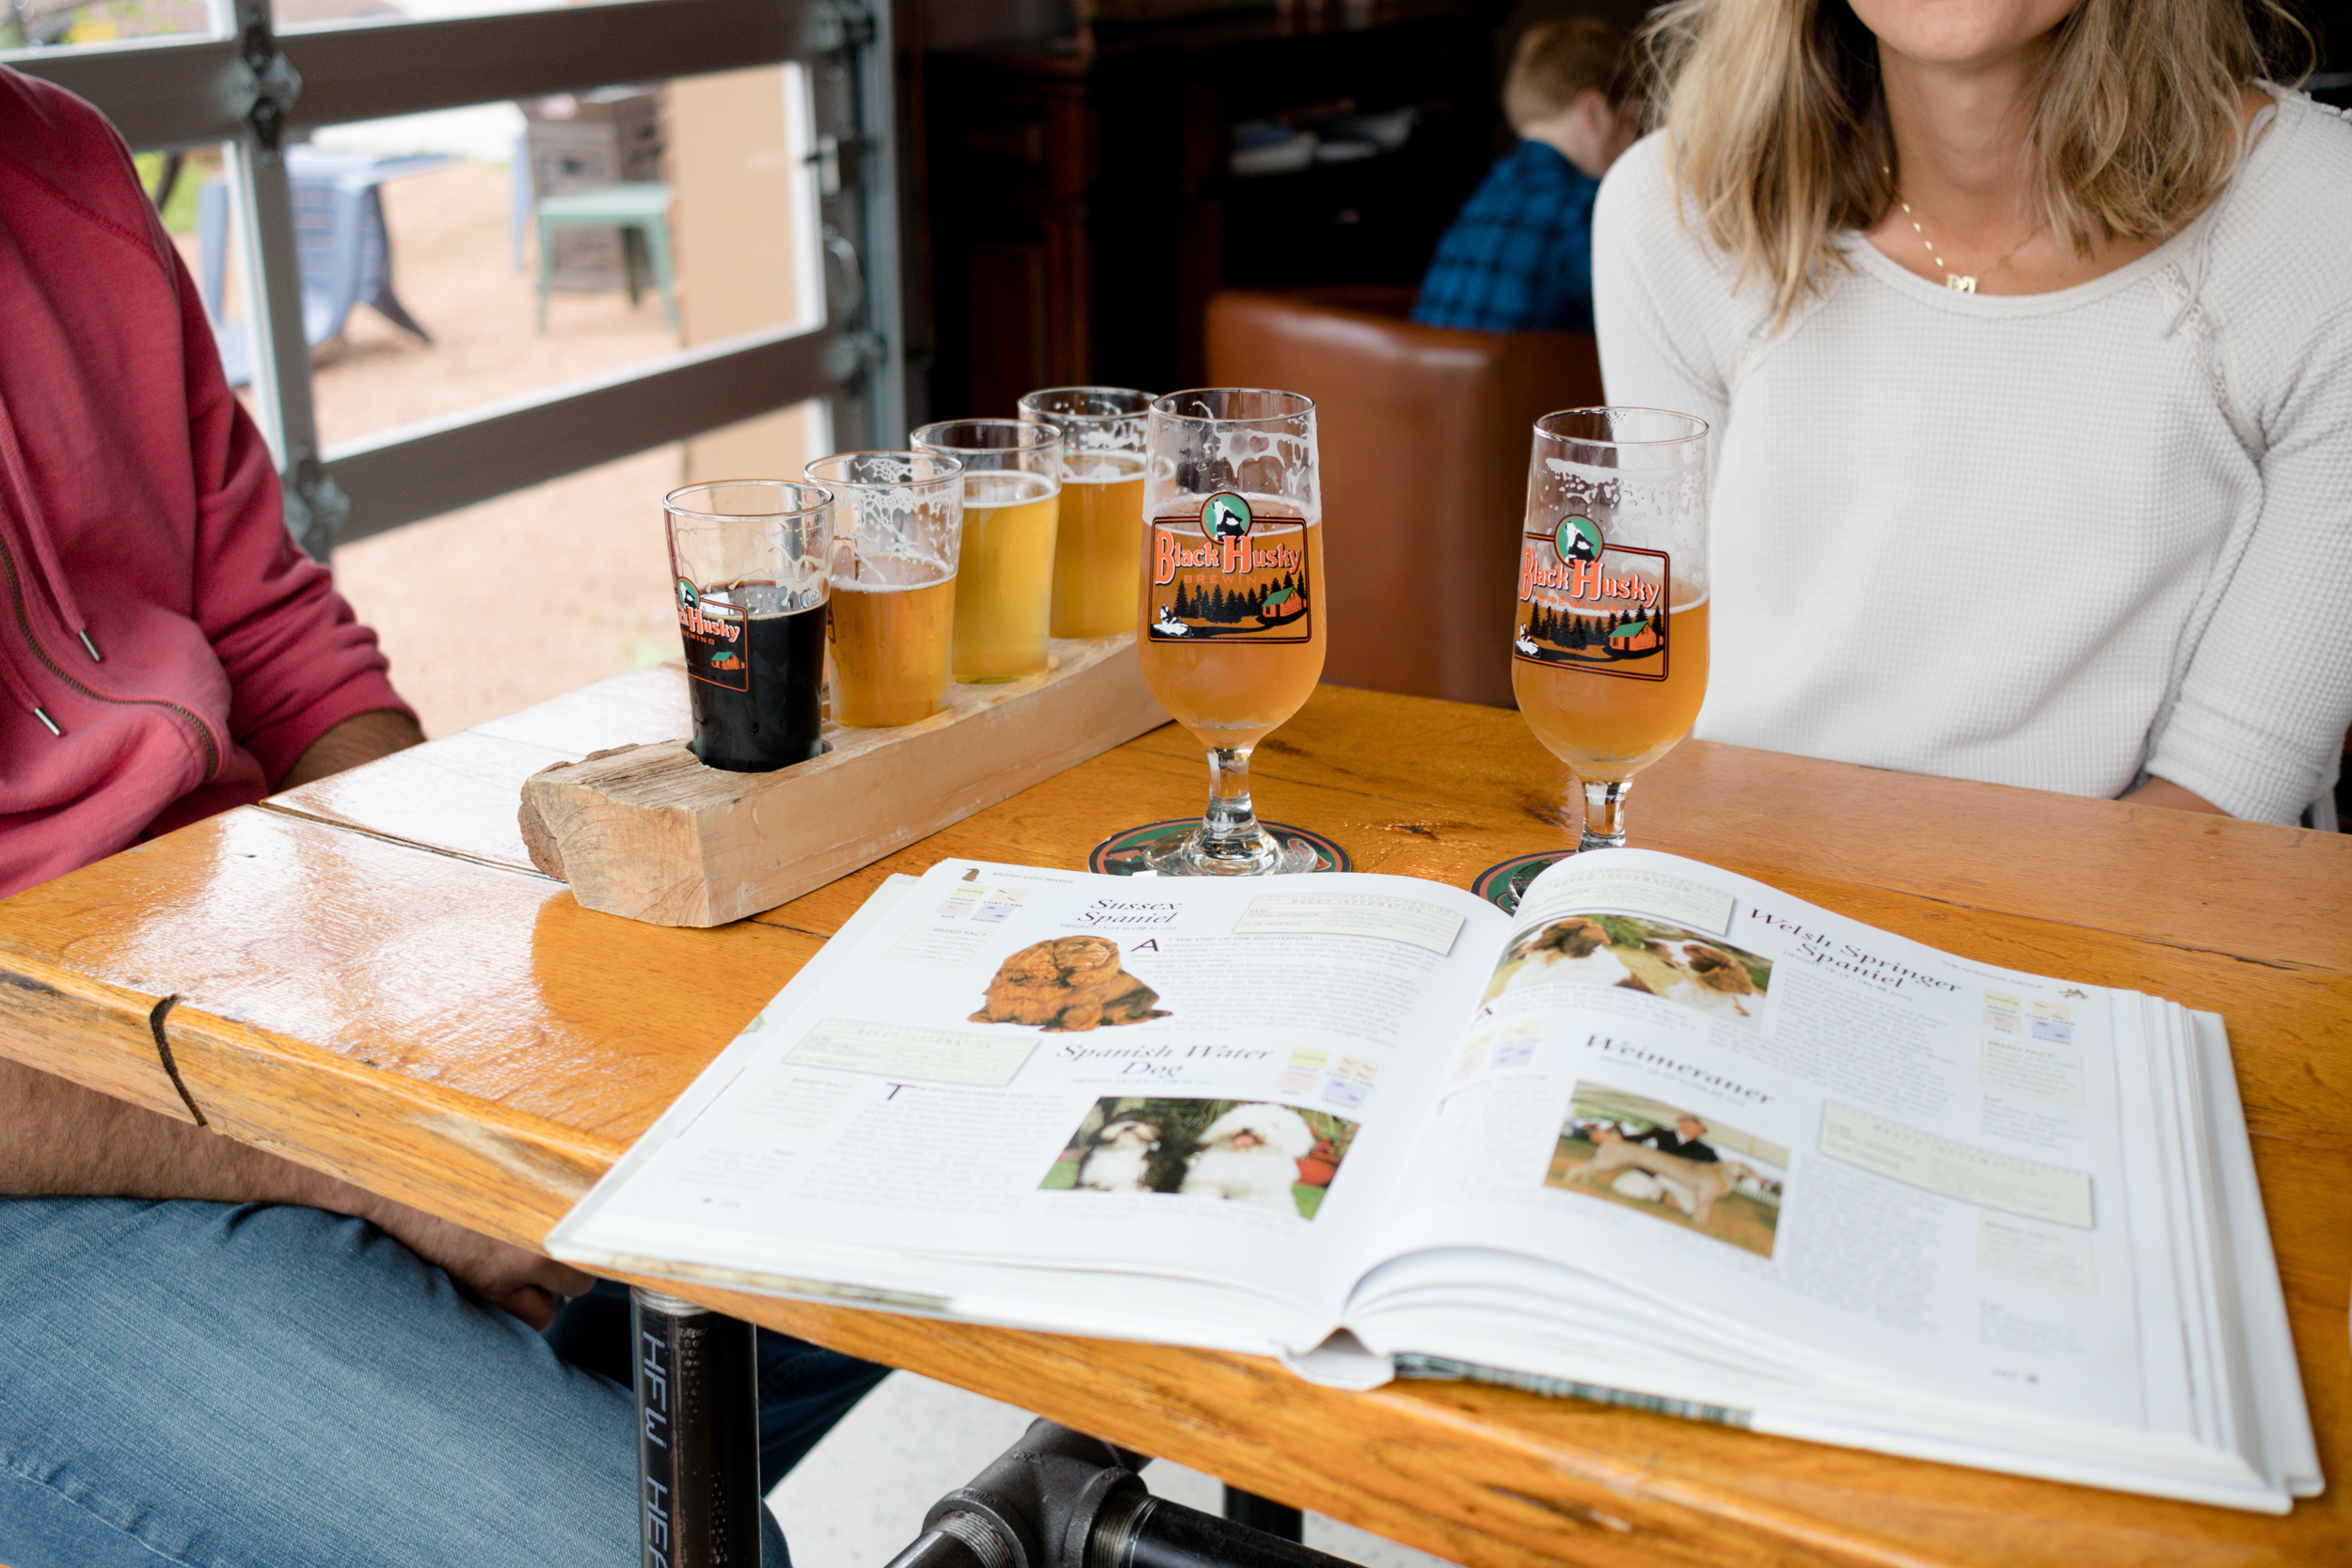 Black Husky Brewing - dog friendly with dog books = heaven